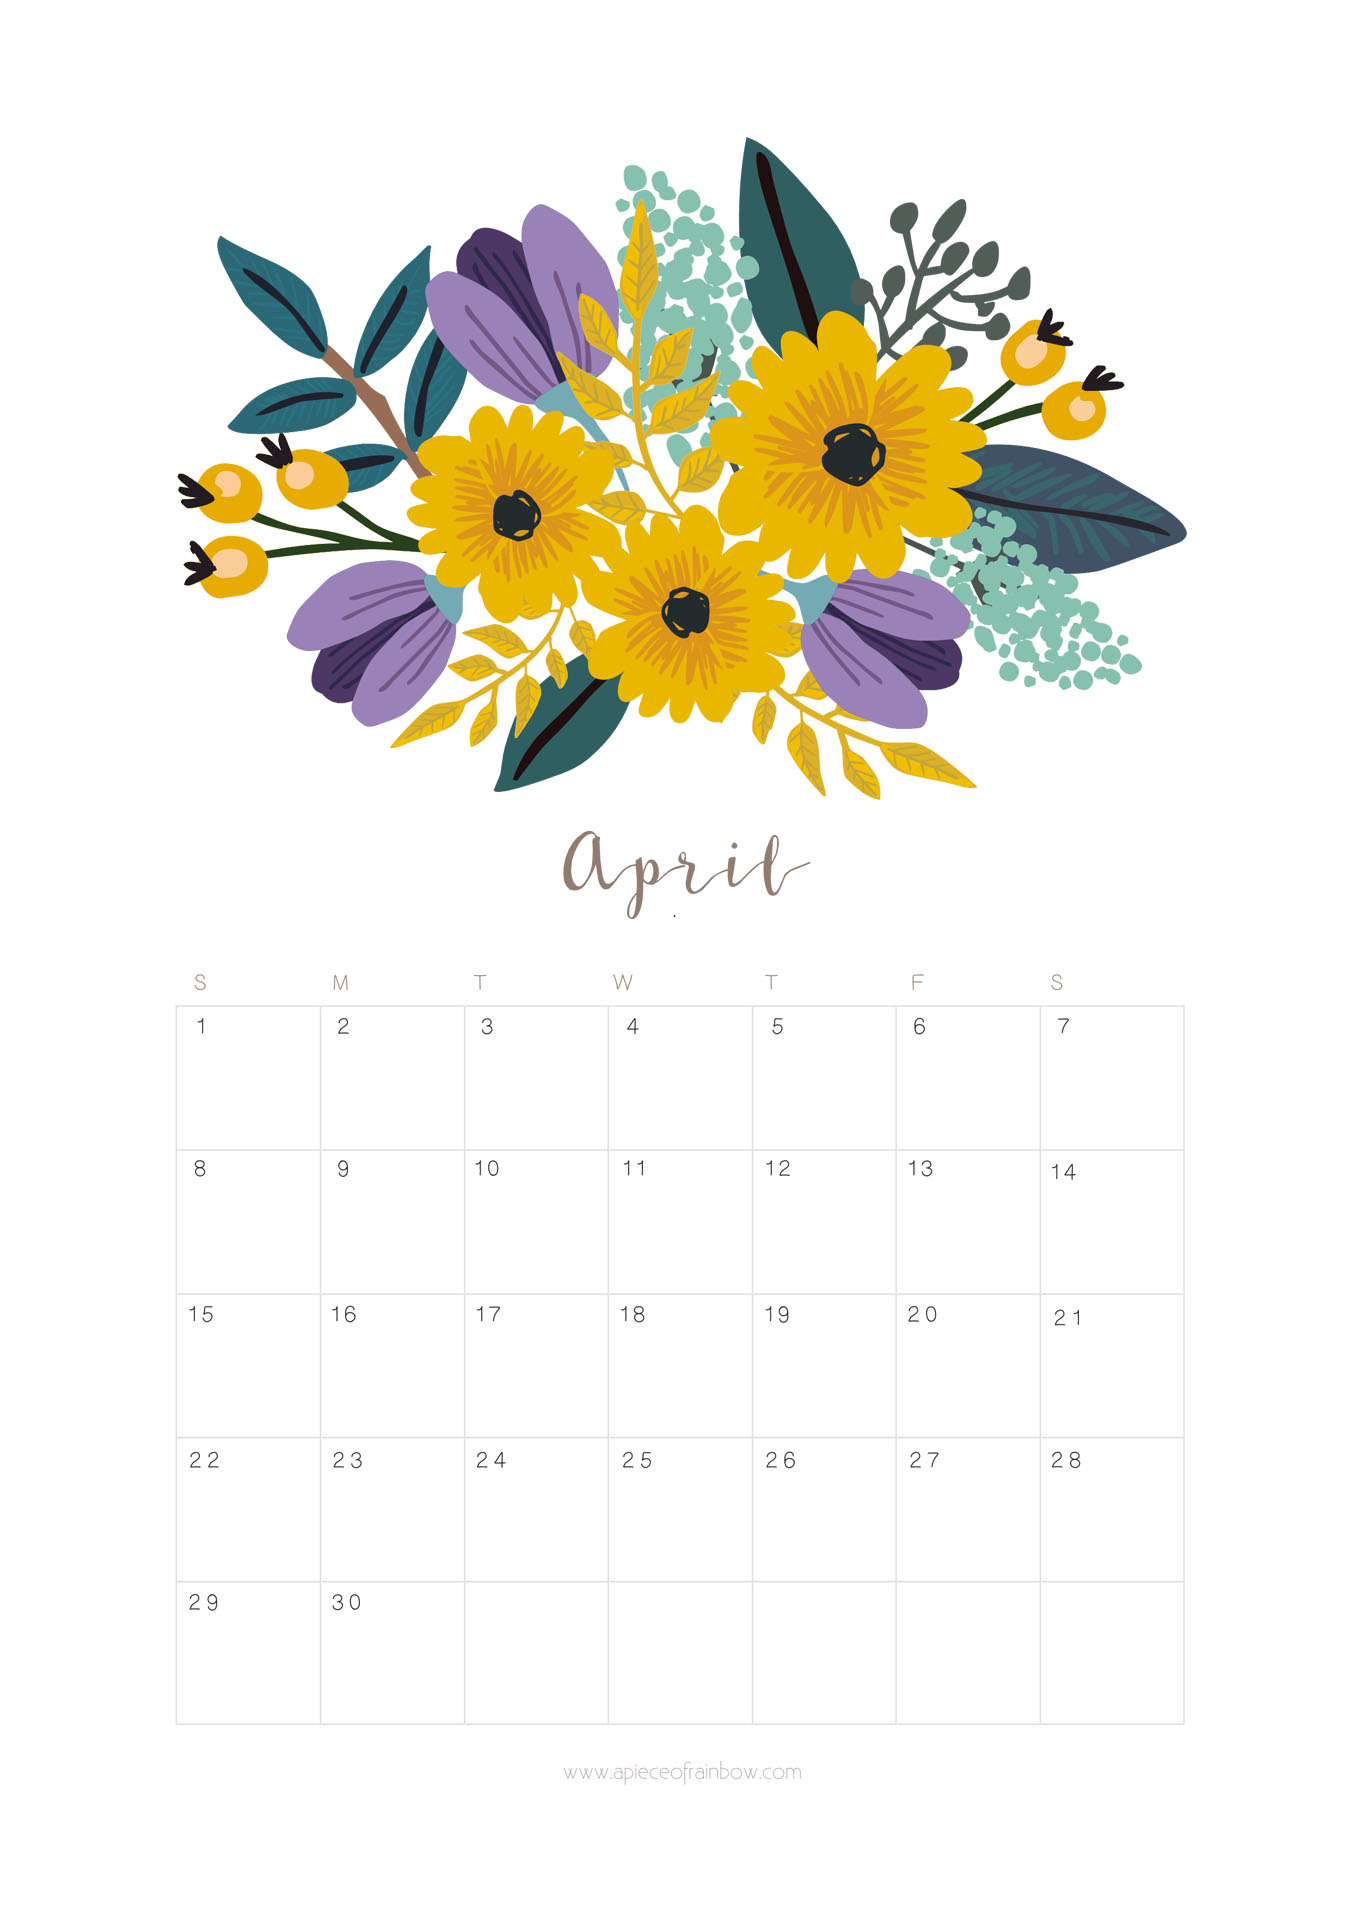 Printable calendar monthly planner. April clipart april 2018